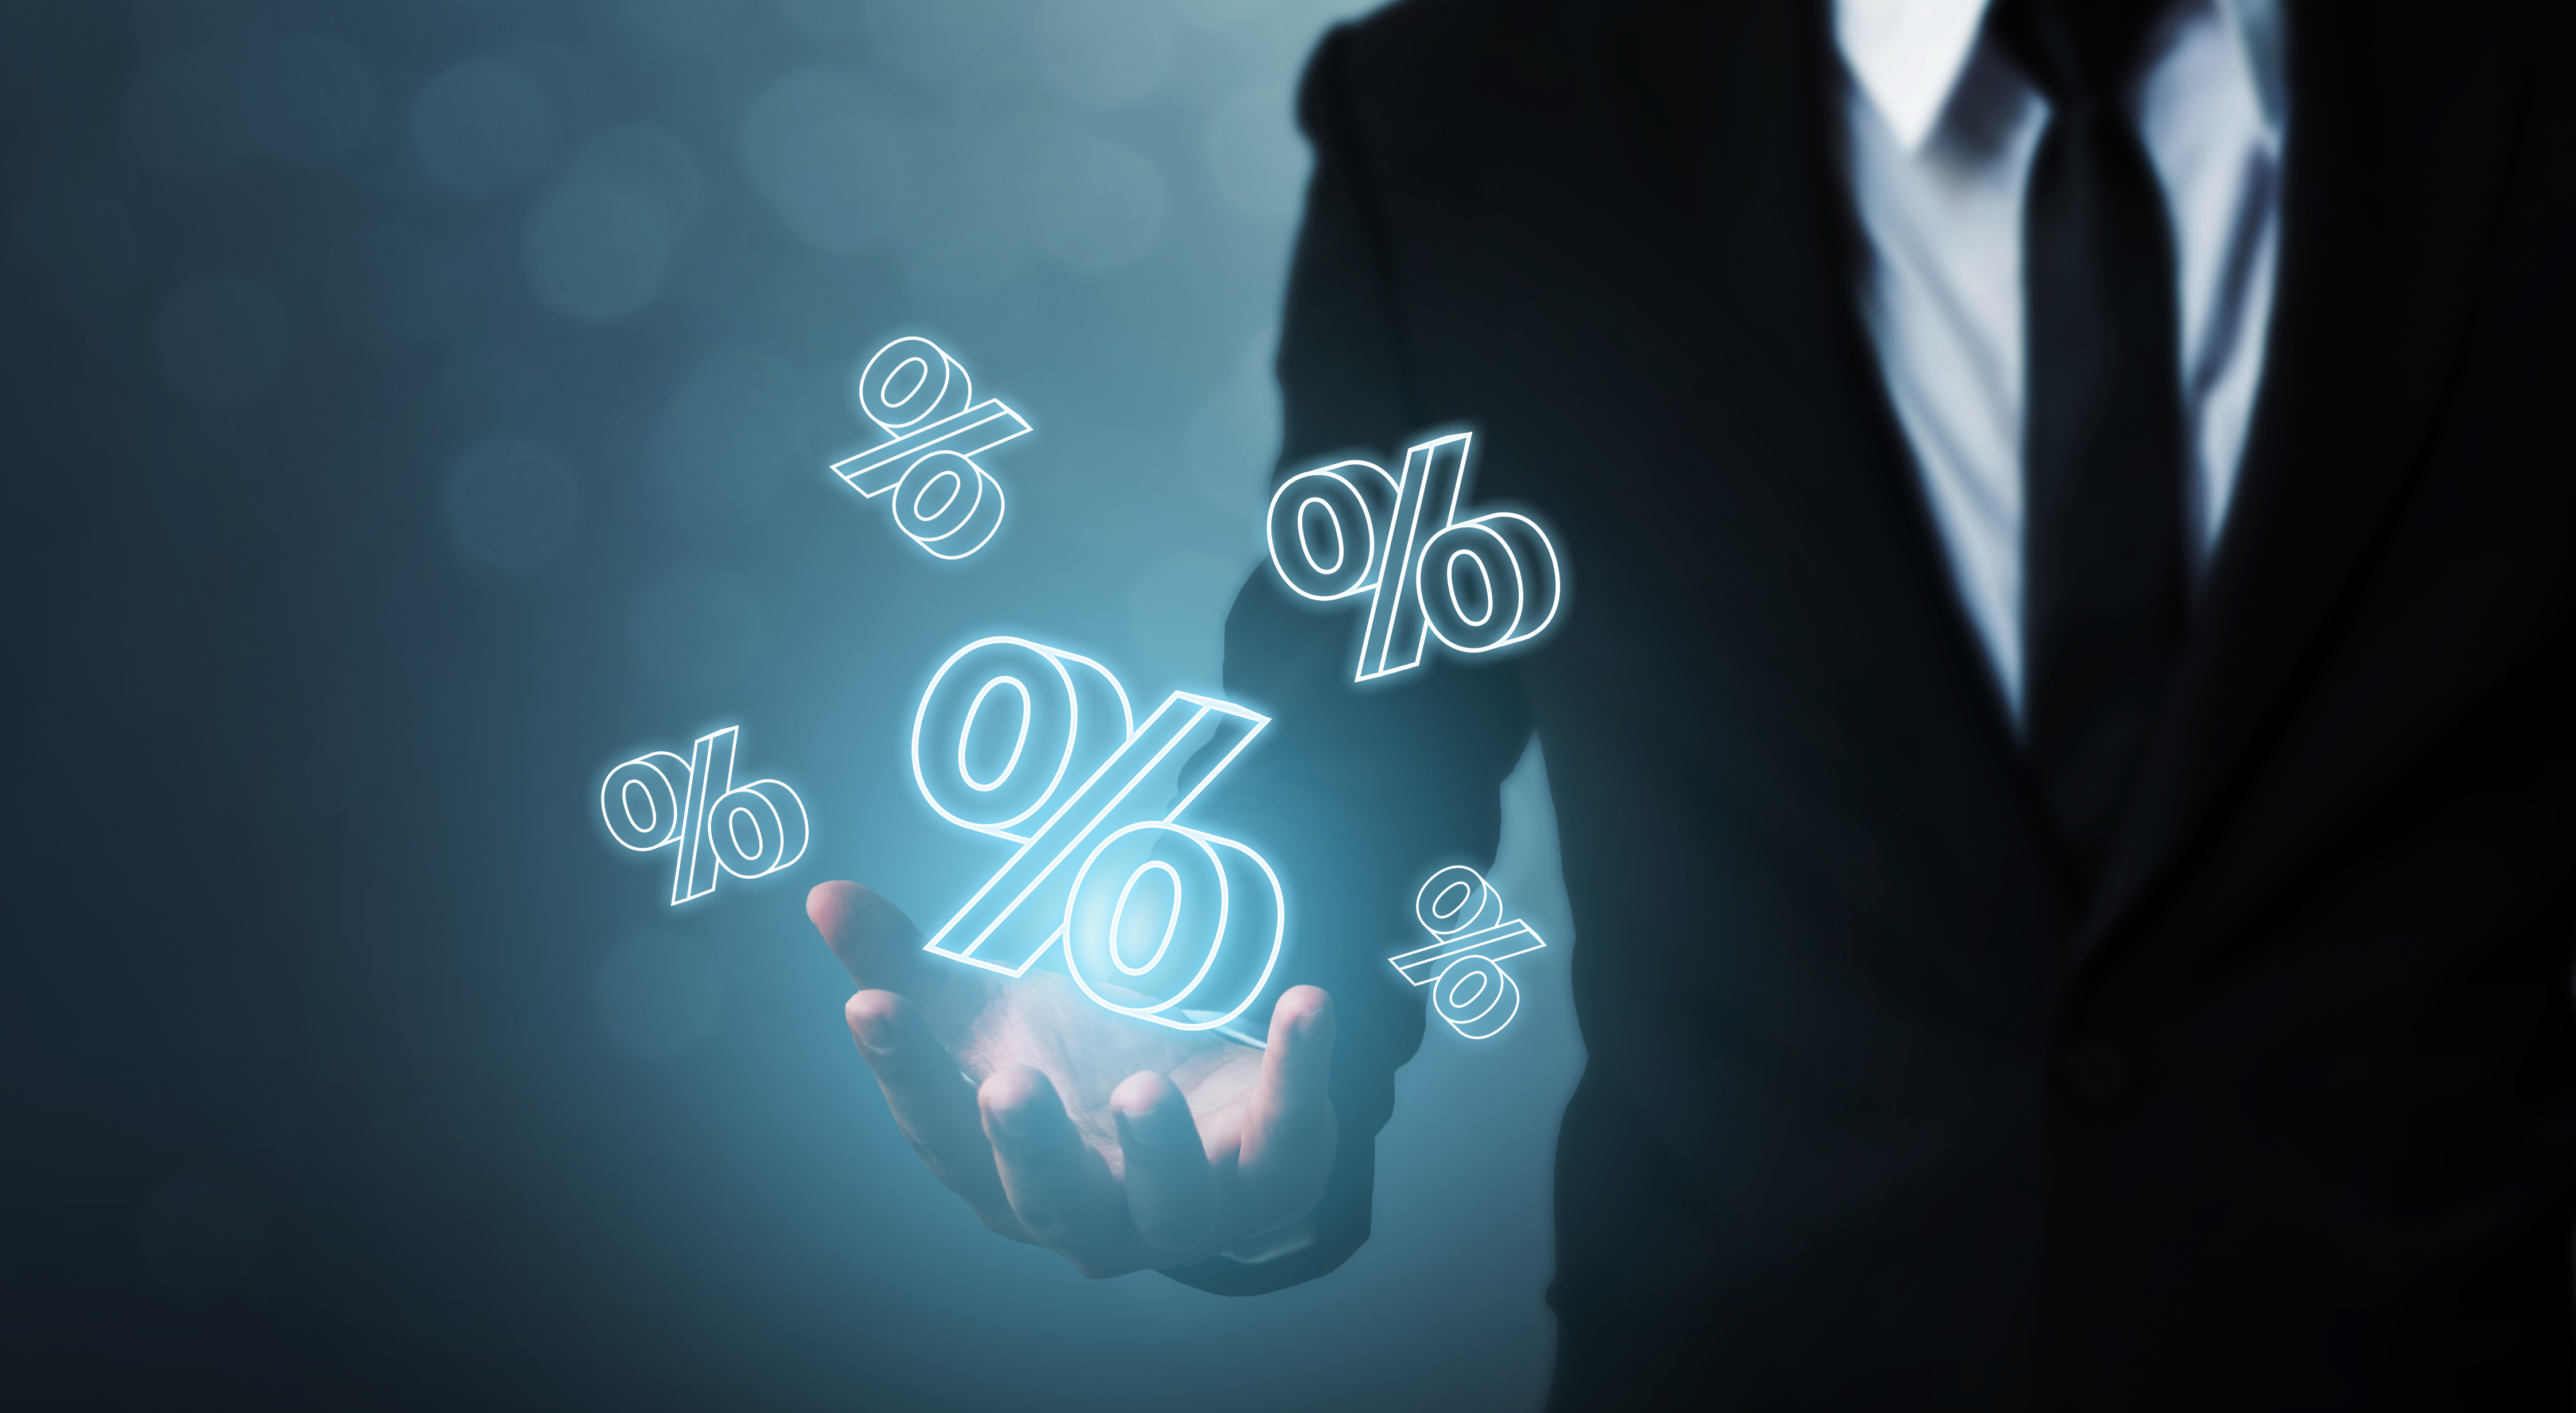 Interest rate financial and mortgage rates concept. Businessman hand show icon percent 3d sign